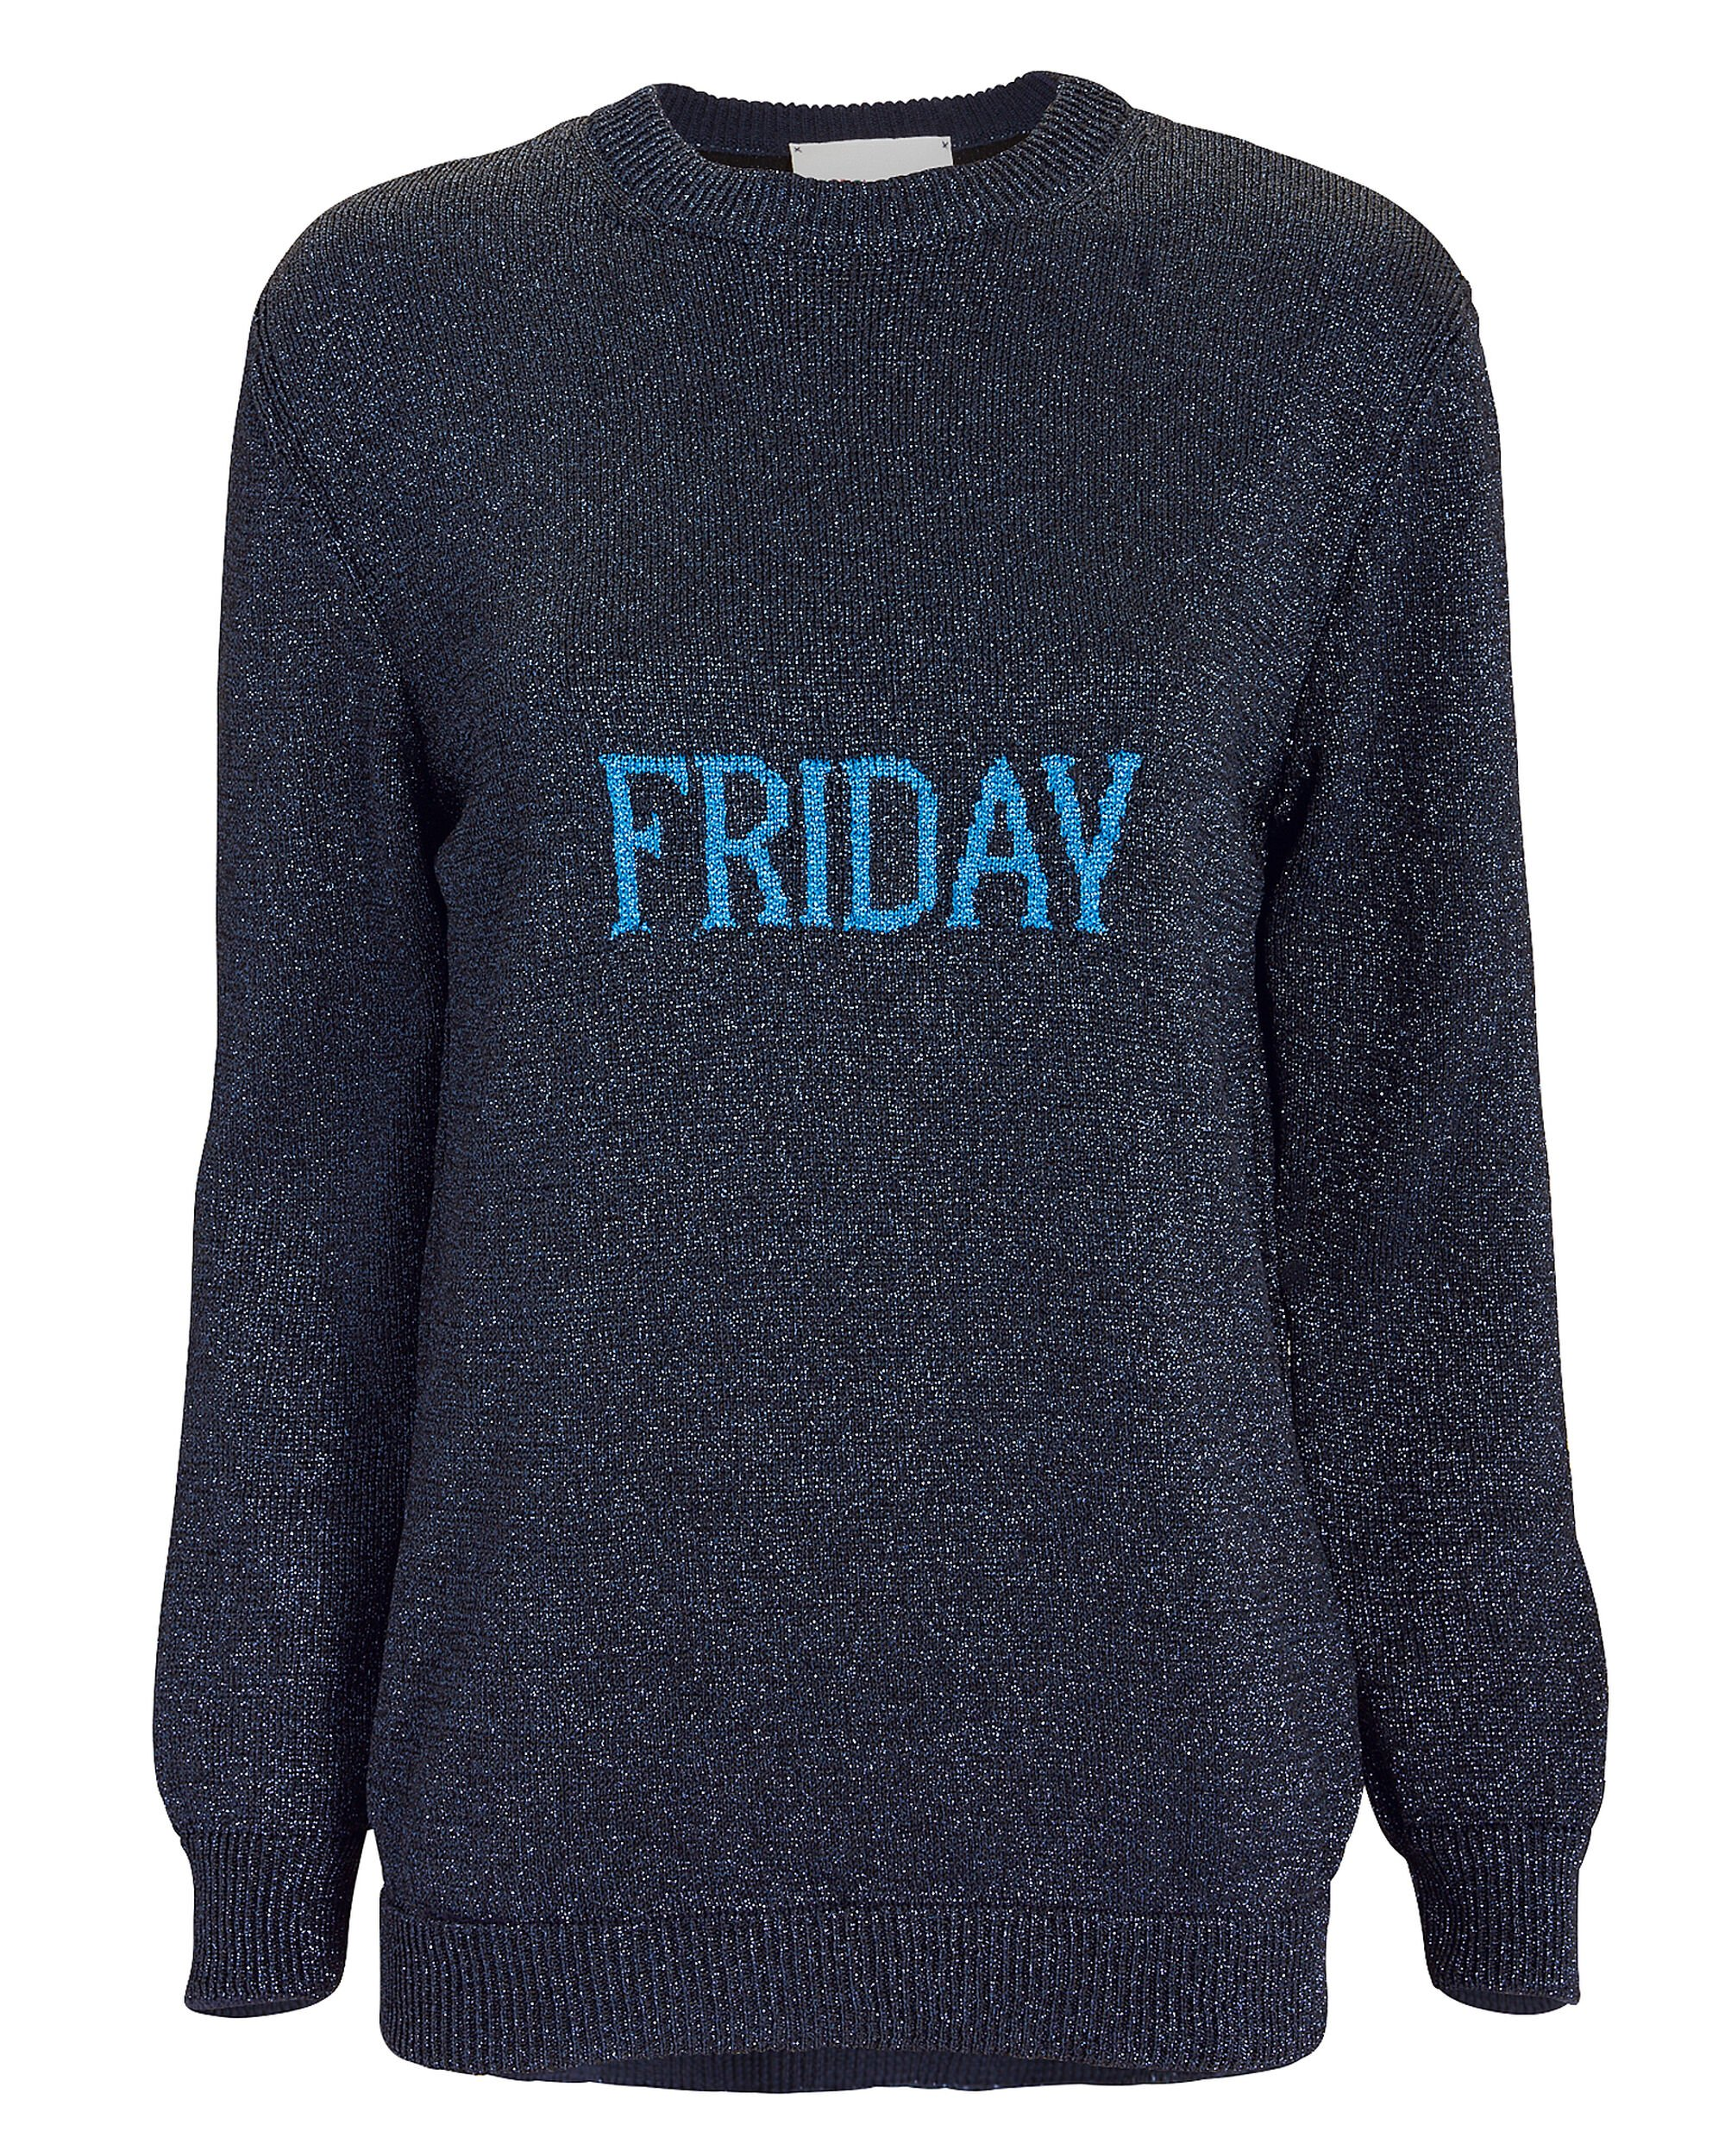 Friday Sweater, NAVY, hi-res